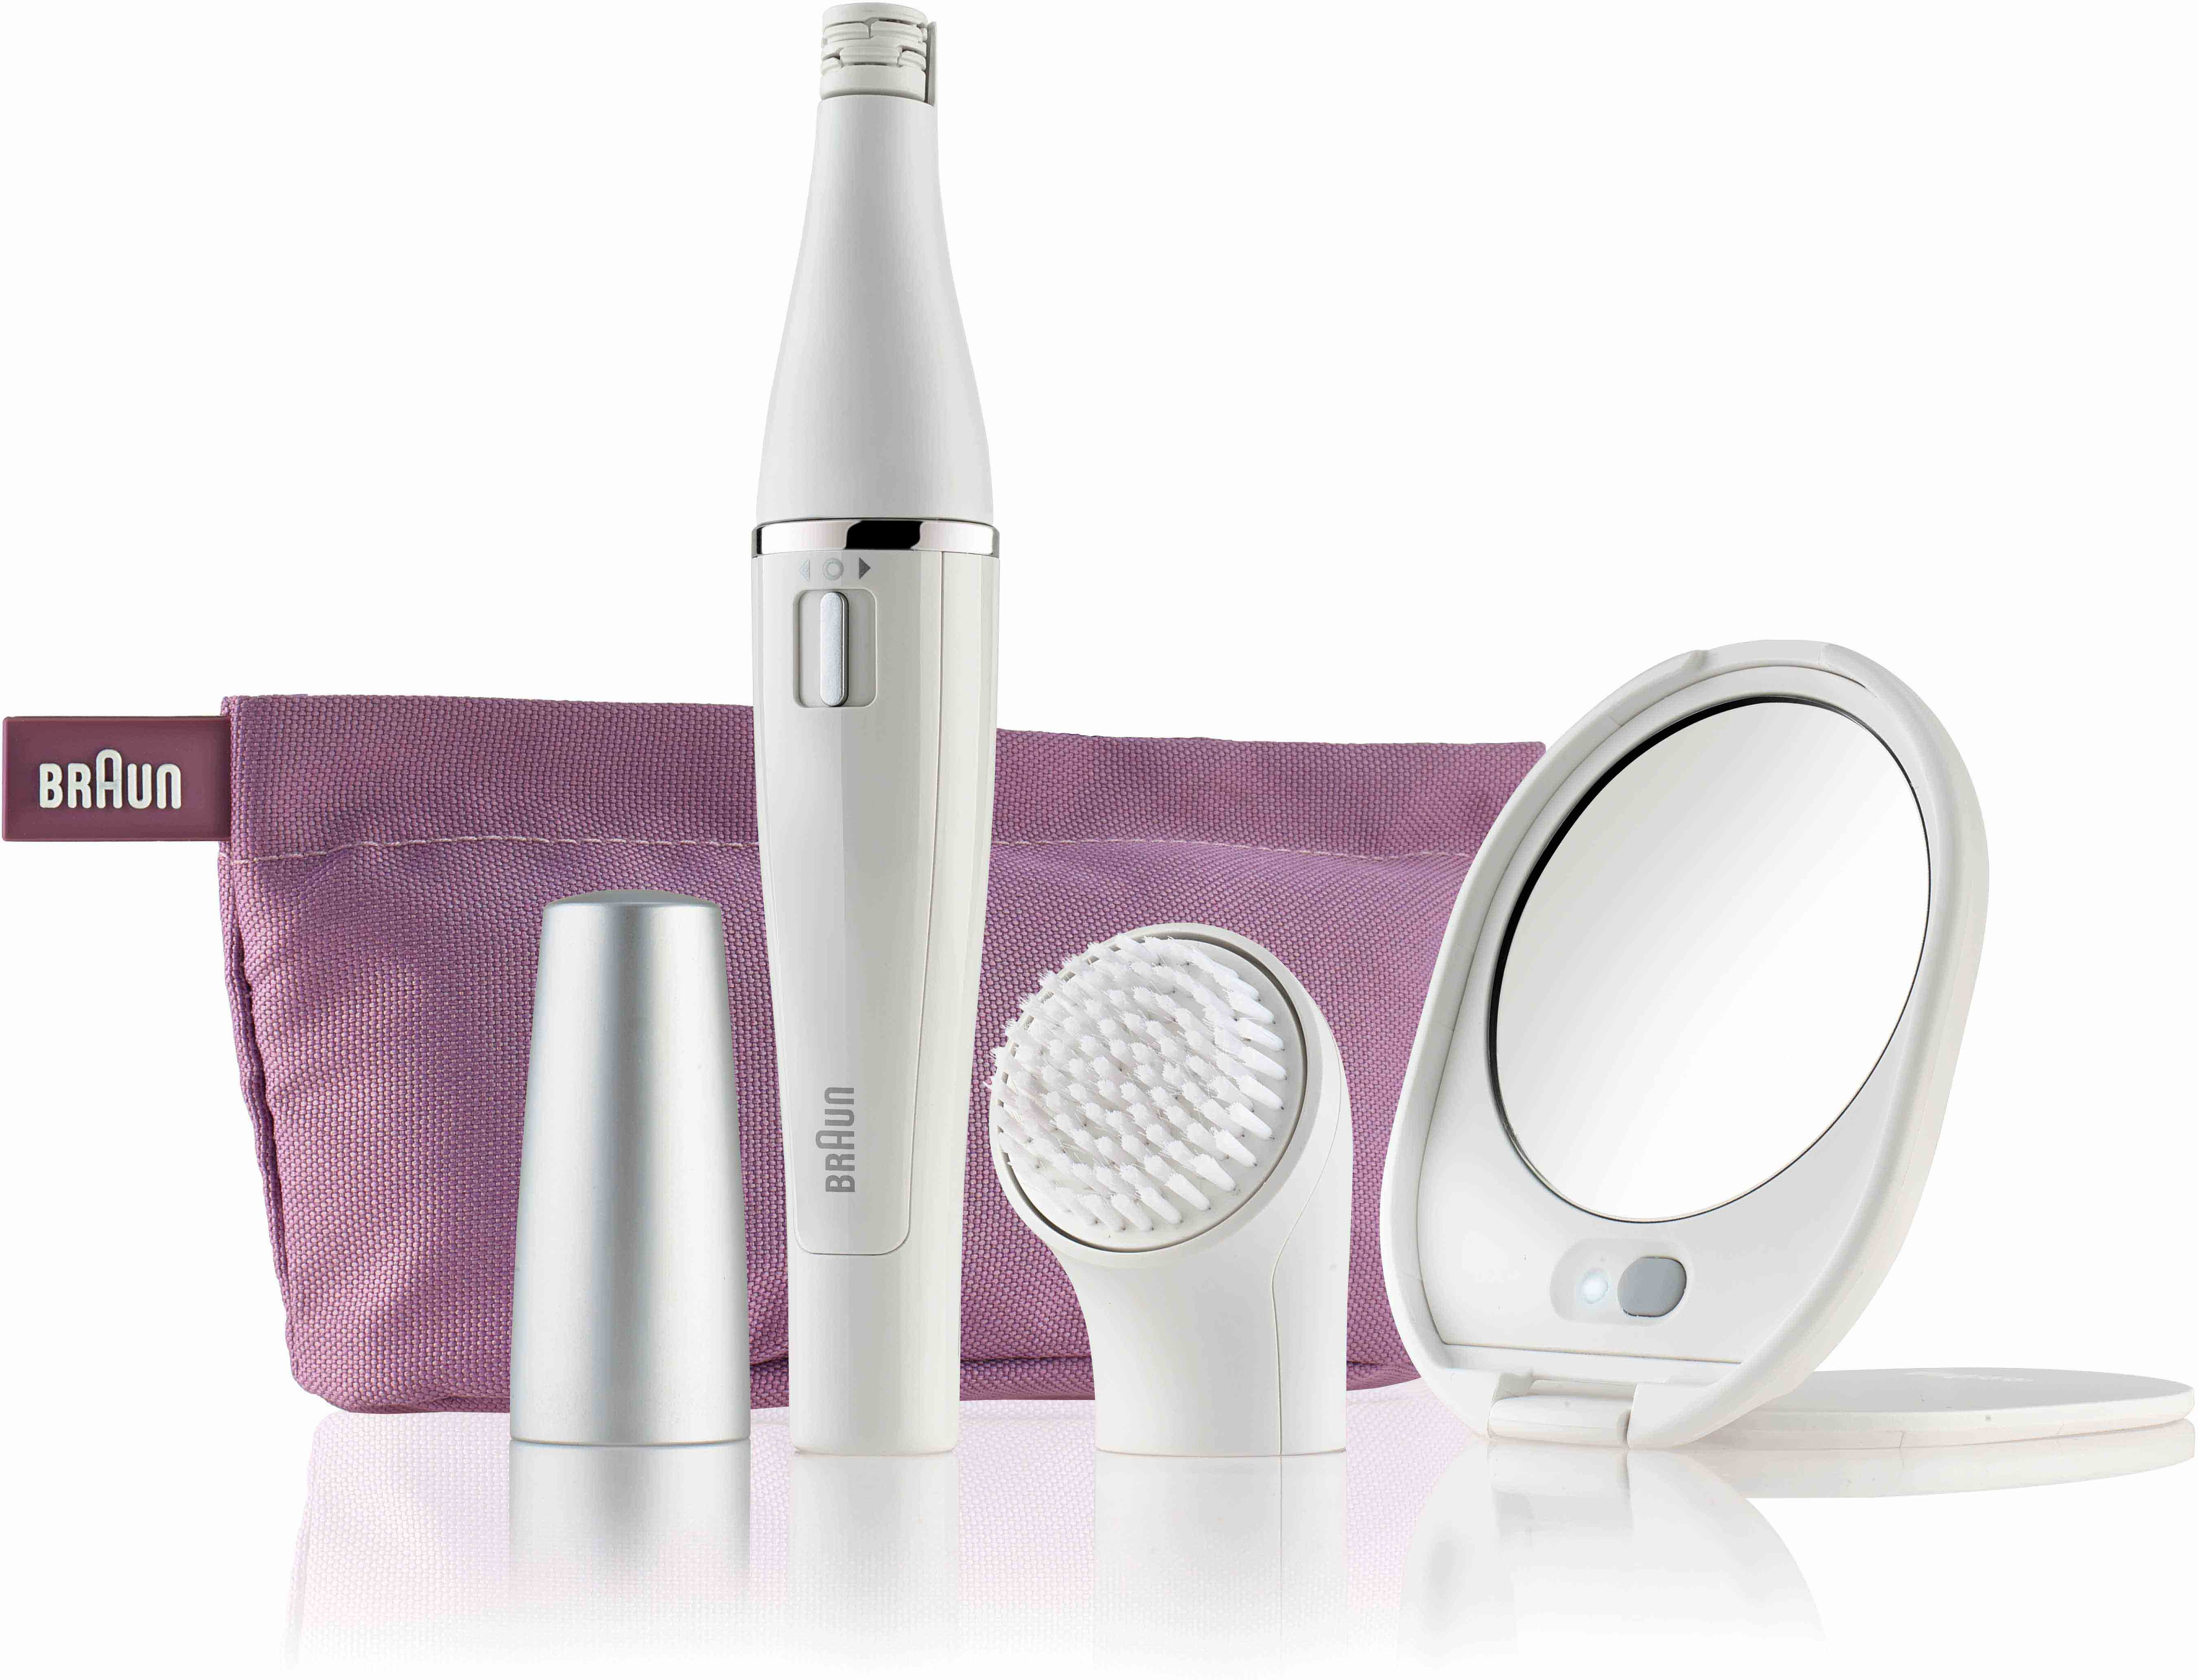 Braun 830 Silk-épil Face Premium Edition - Facial Cleansing Brush and